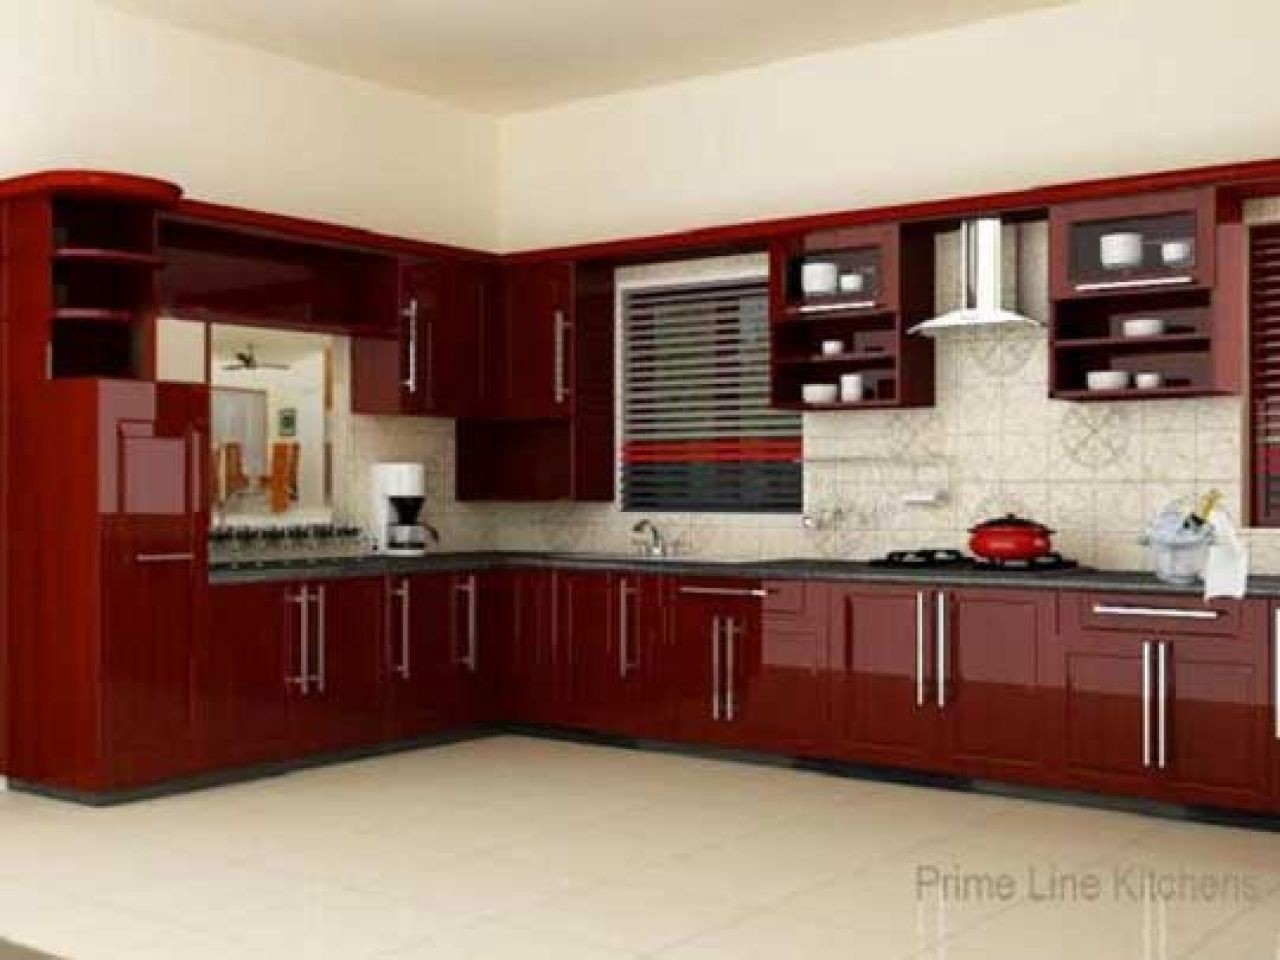 New Model Kitchen Design Putra Sulung Medium